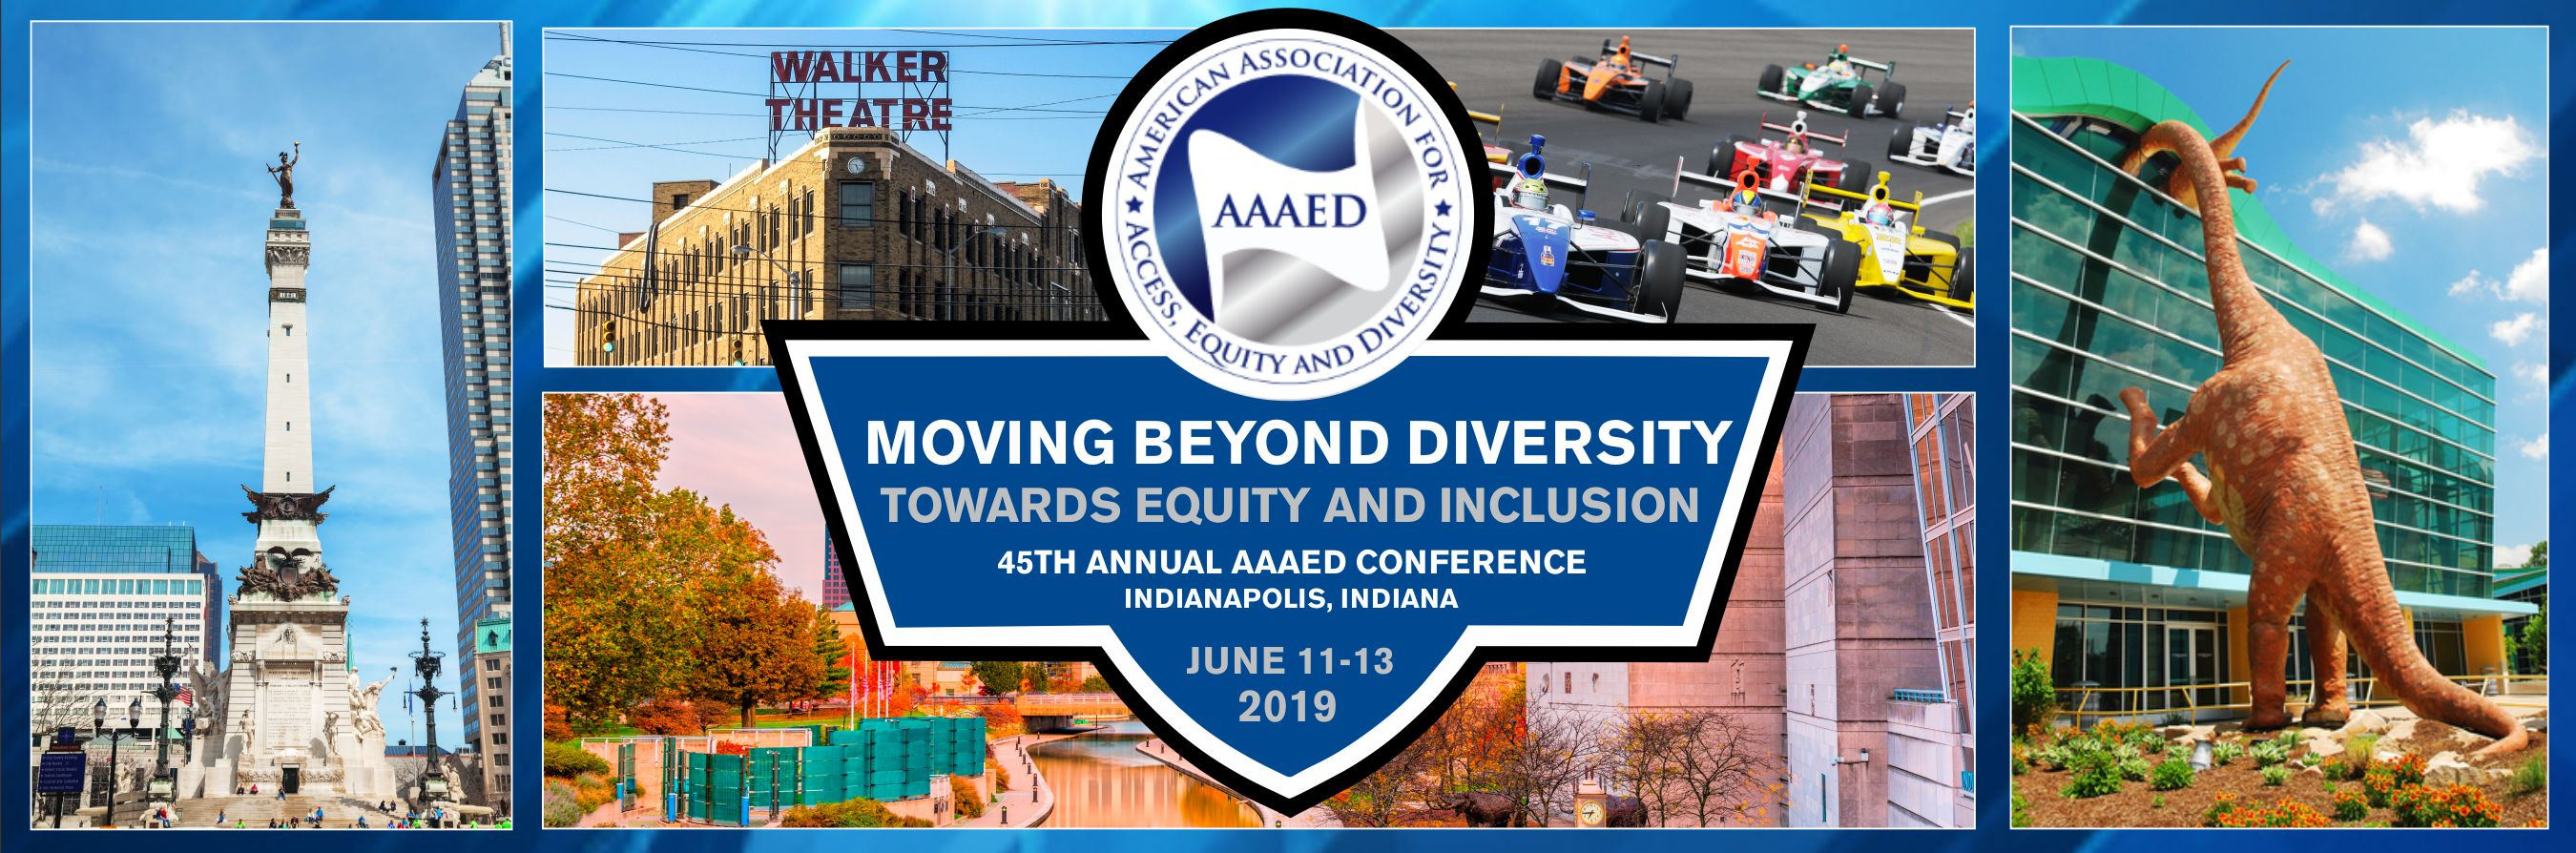 AAAED 2019 Annual Conference & Member Meeting